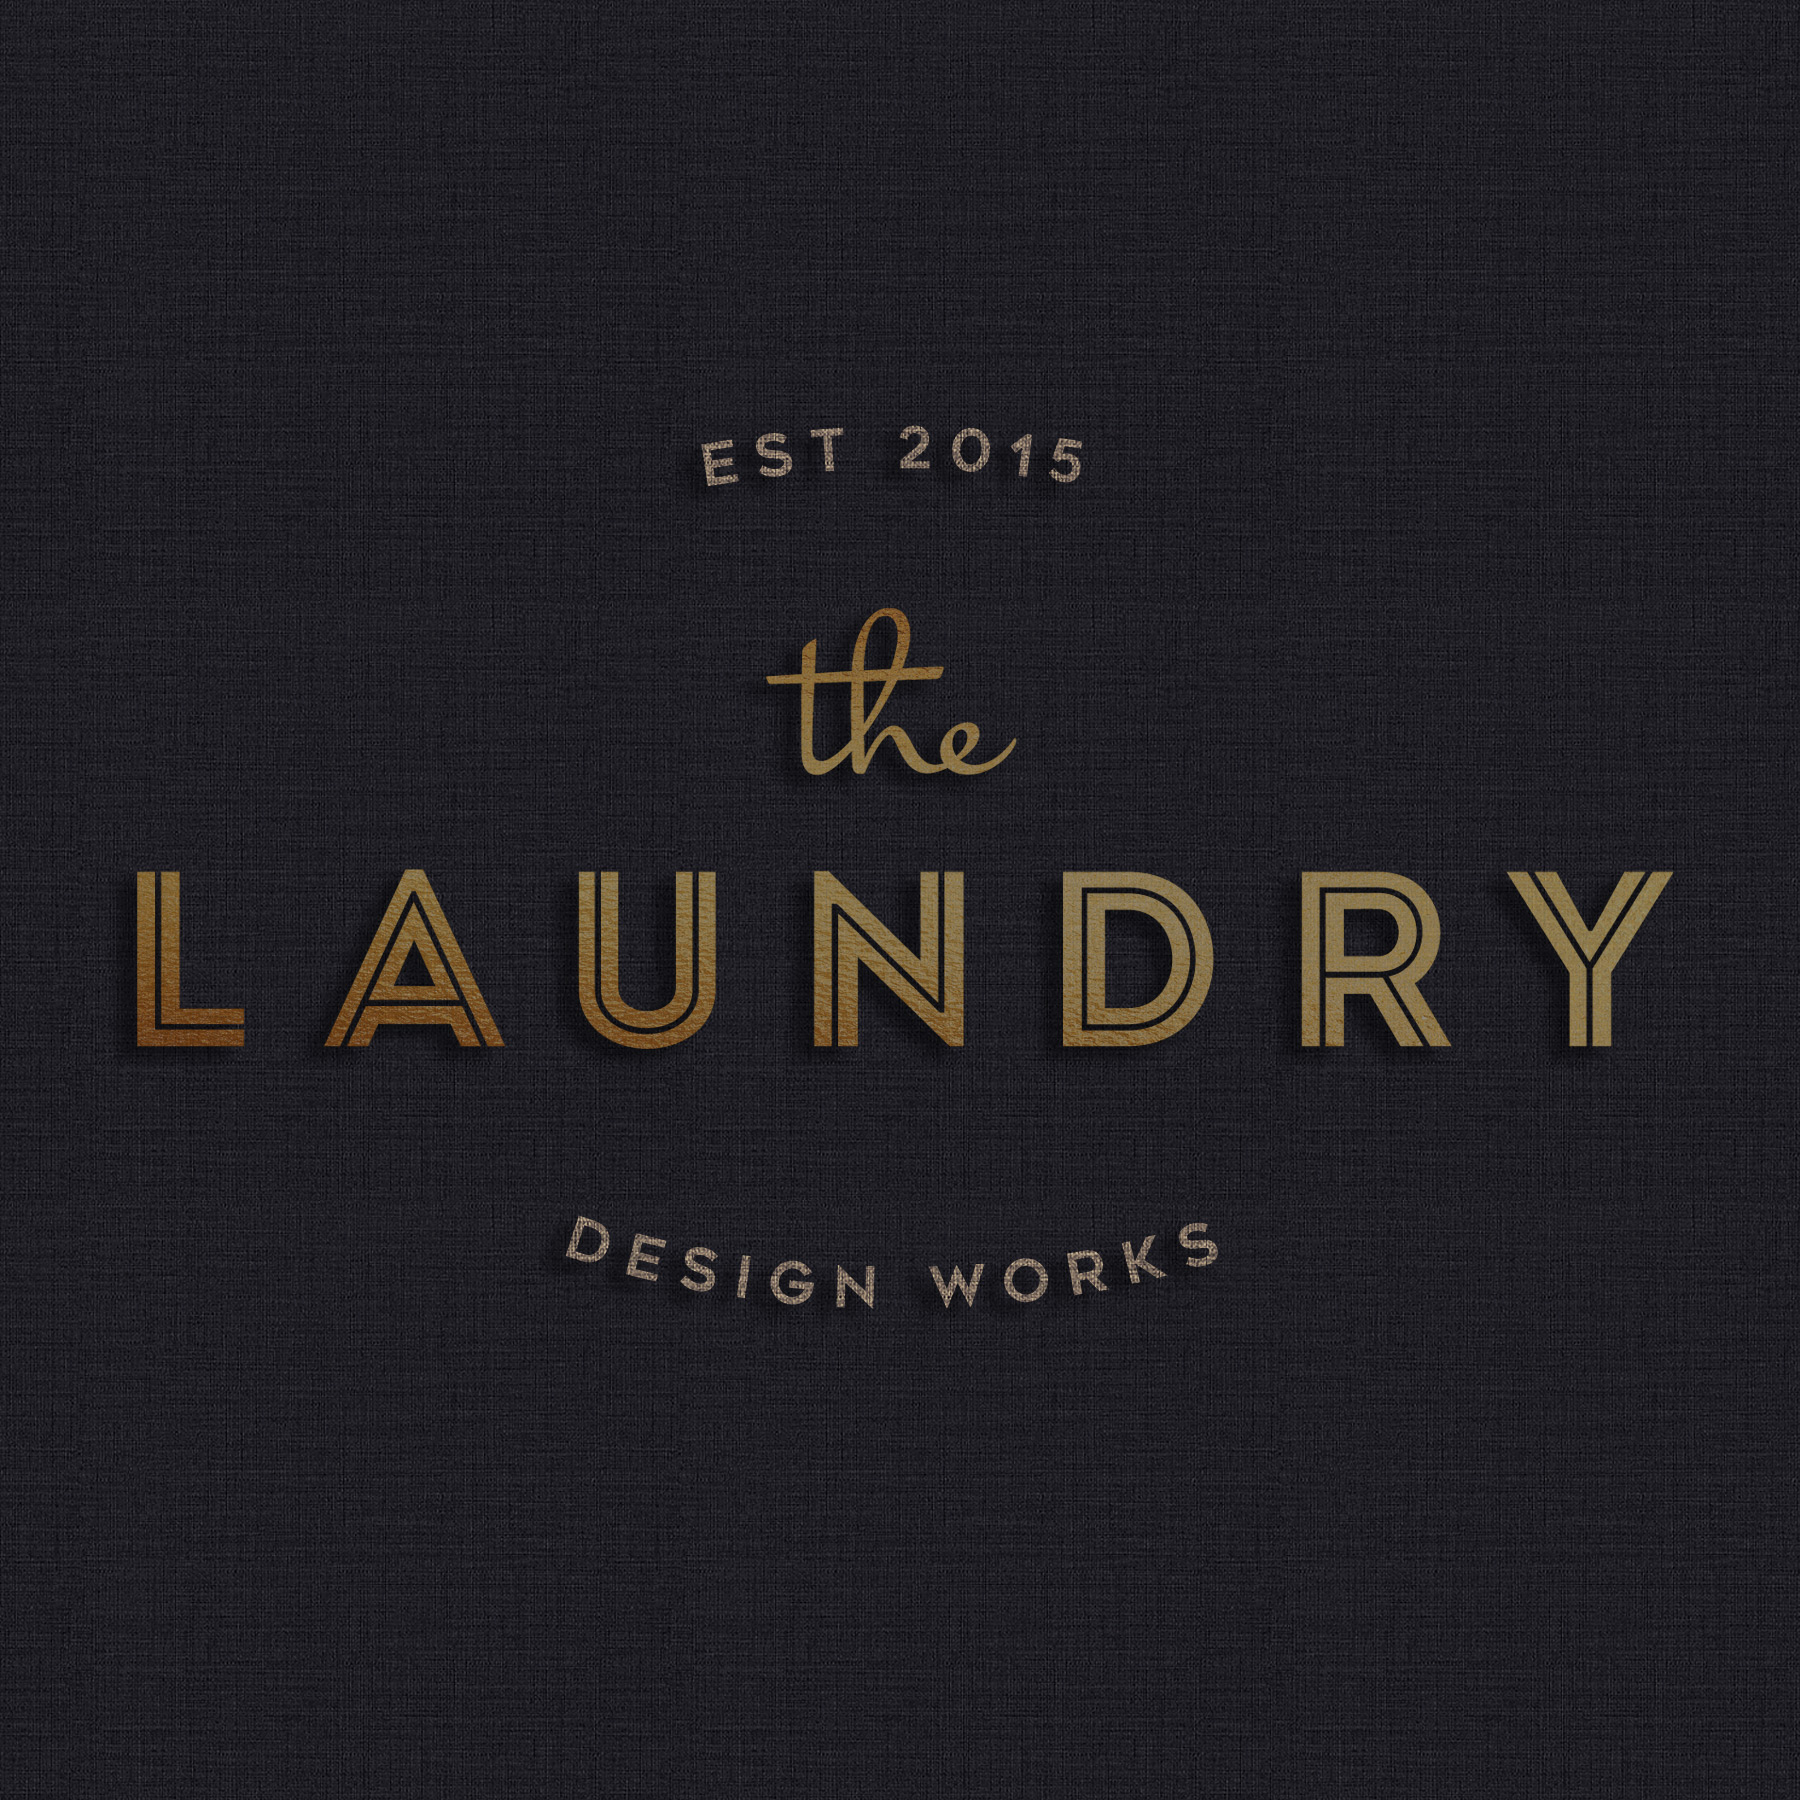 The Laundry Design Works